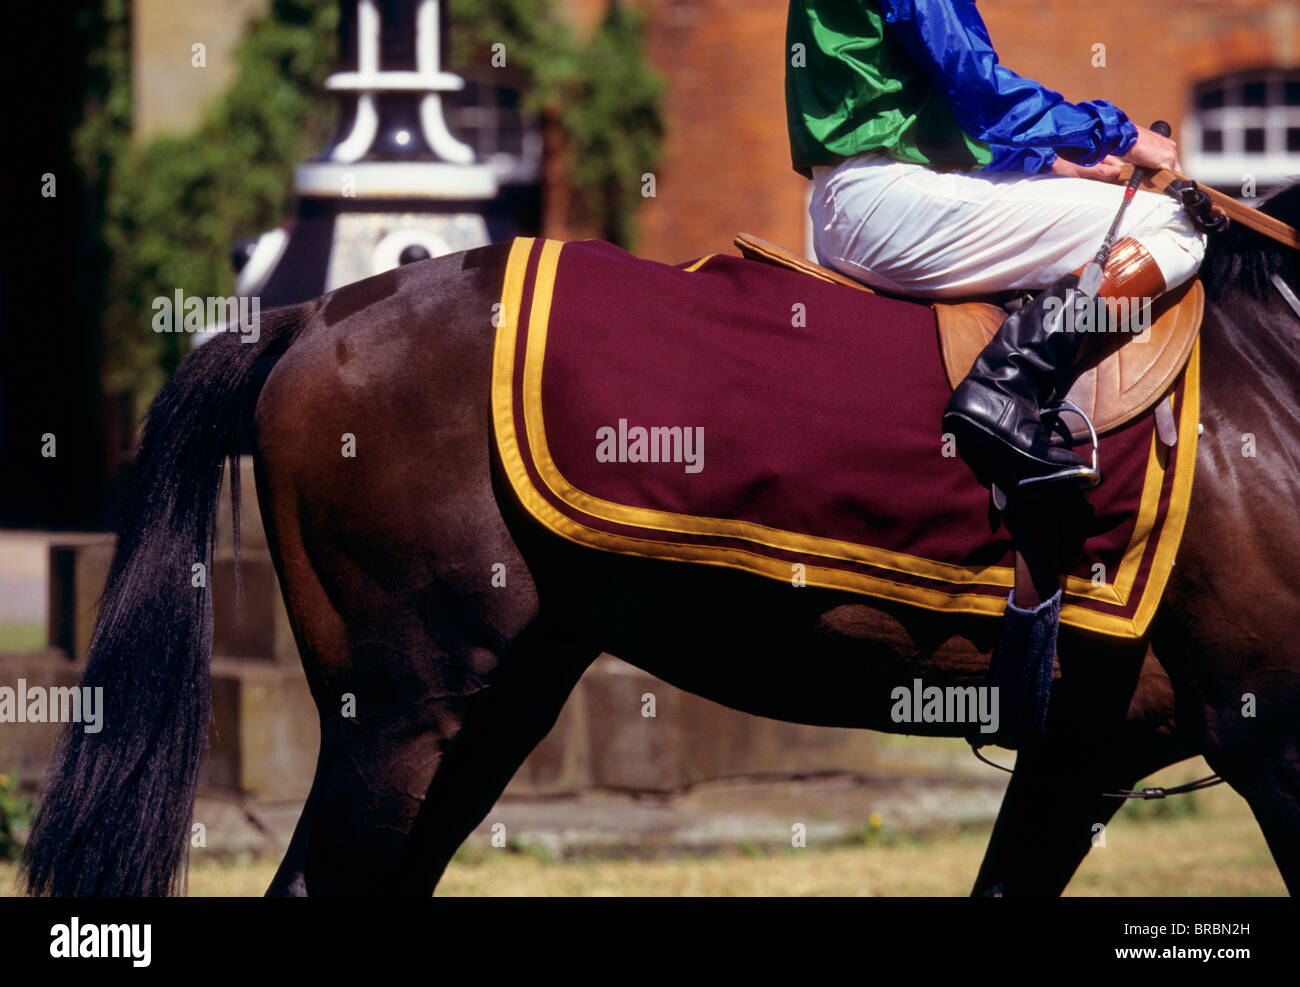 Jockey in owners colours walks his horse at race track - Stock Image